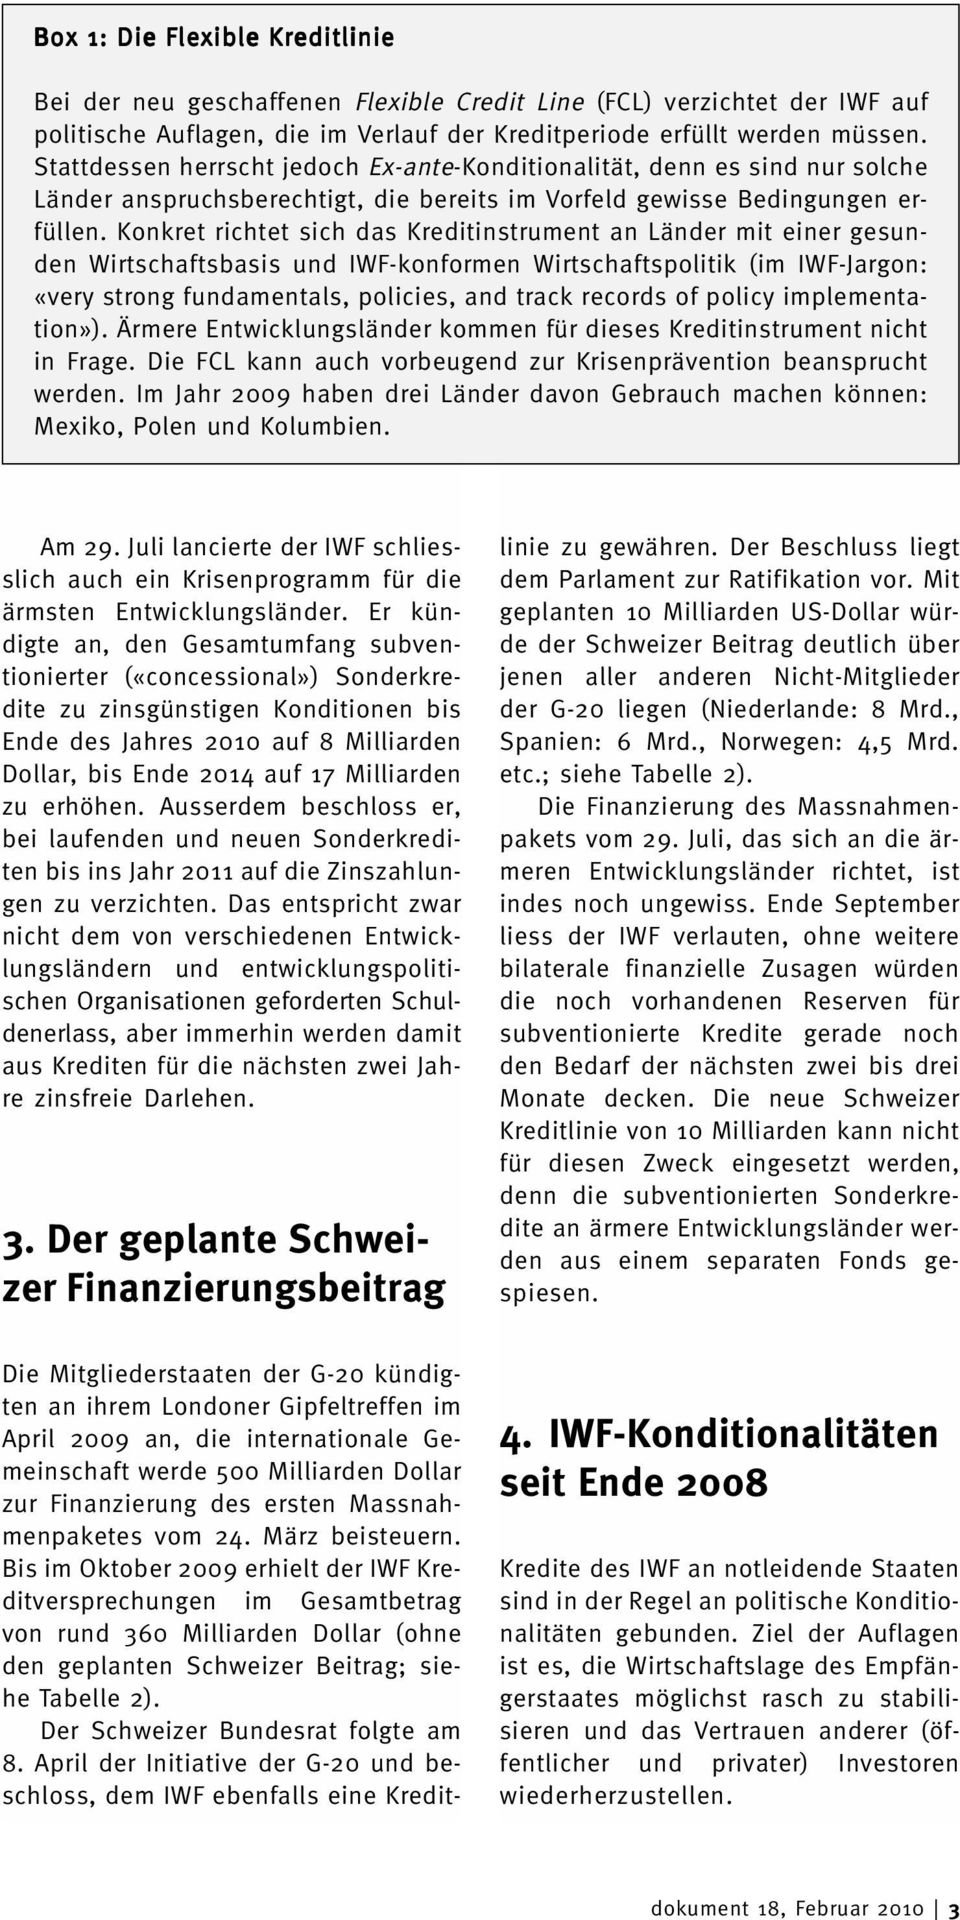 Konkret richtet sich das Kreditinstrument an Länder mit einer gesunden Wirtschaftsbasis und IWF-konformen Wirtschaftspolitik (im IWF-Jargon: «very strong fundamentals, policies, and track records of